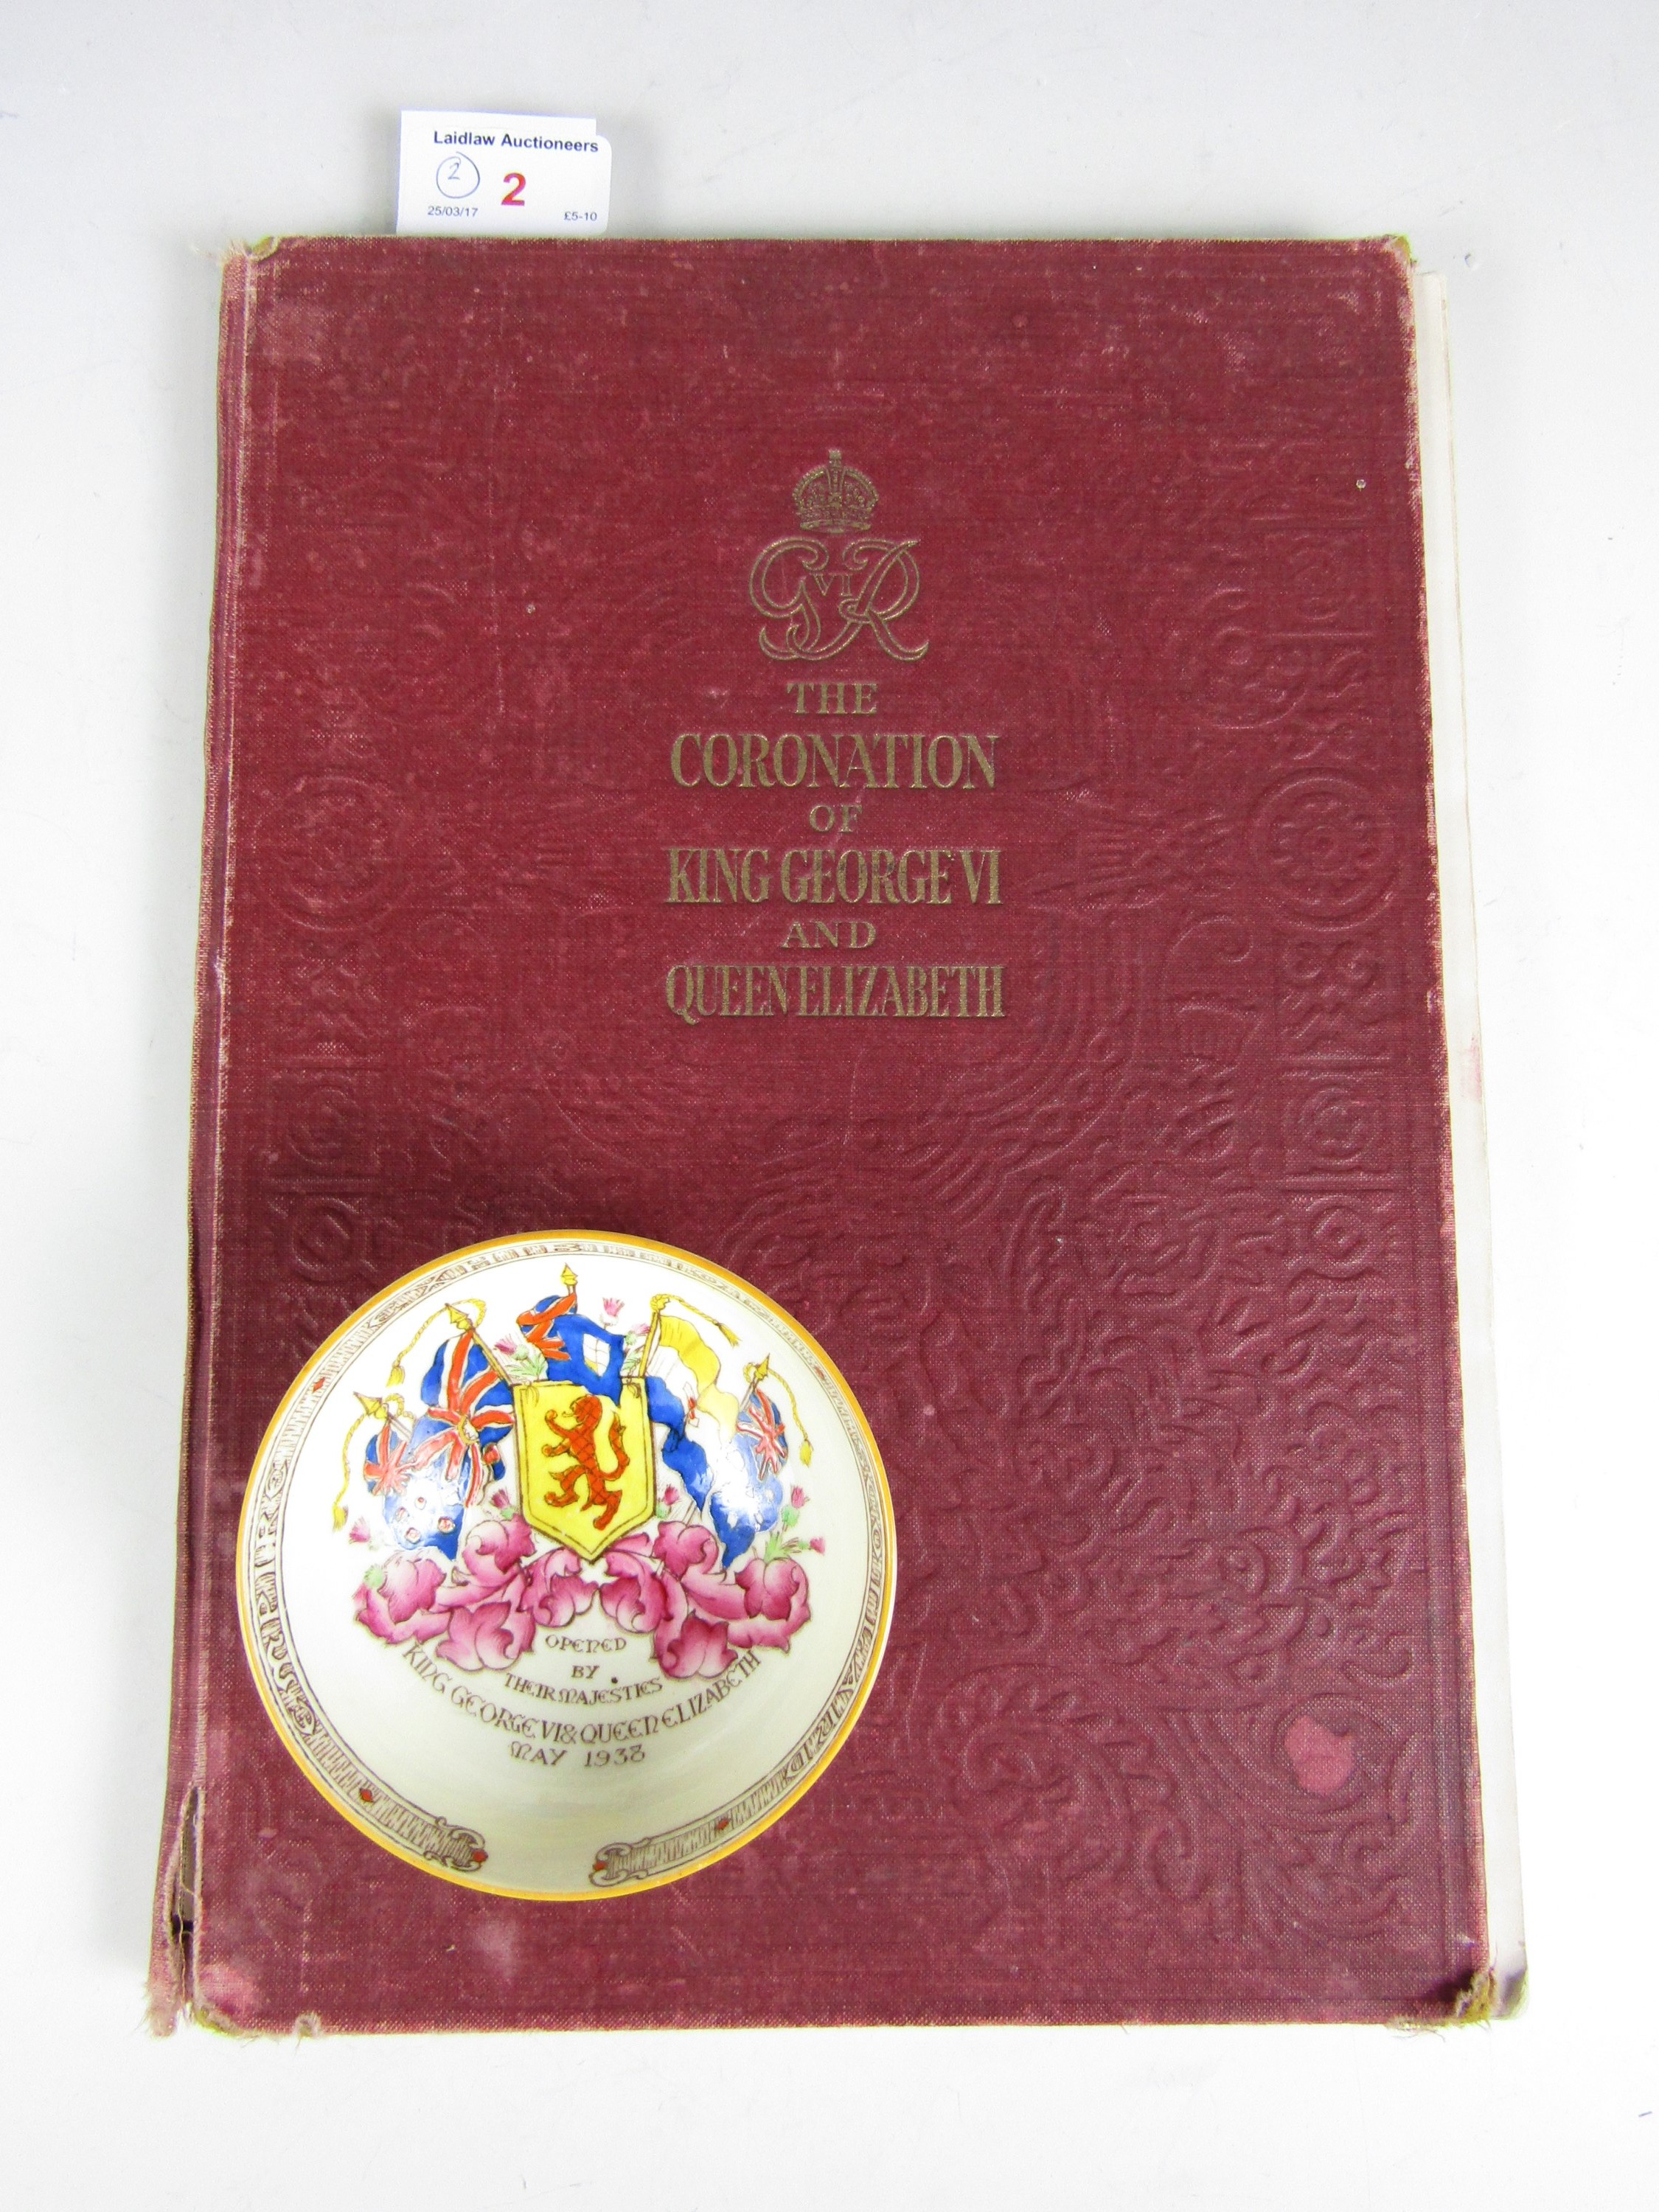 Lot 2 - A Royal commemorative book The Coronation of King George VI and Queen Elizabeth together with a